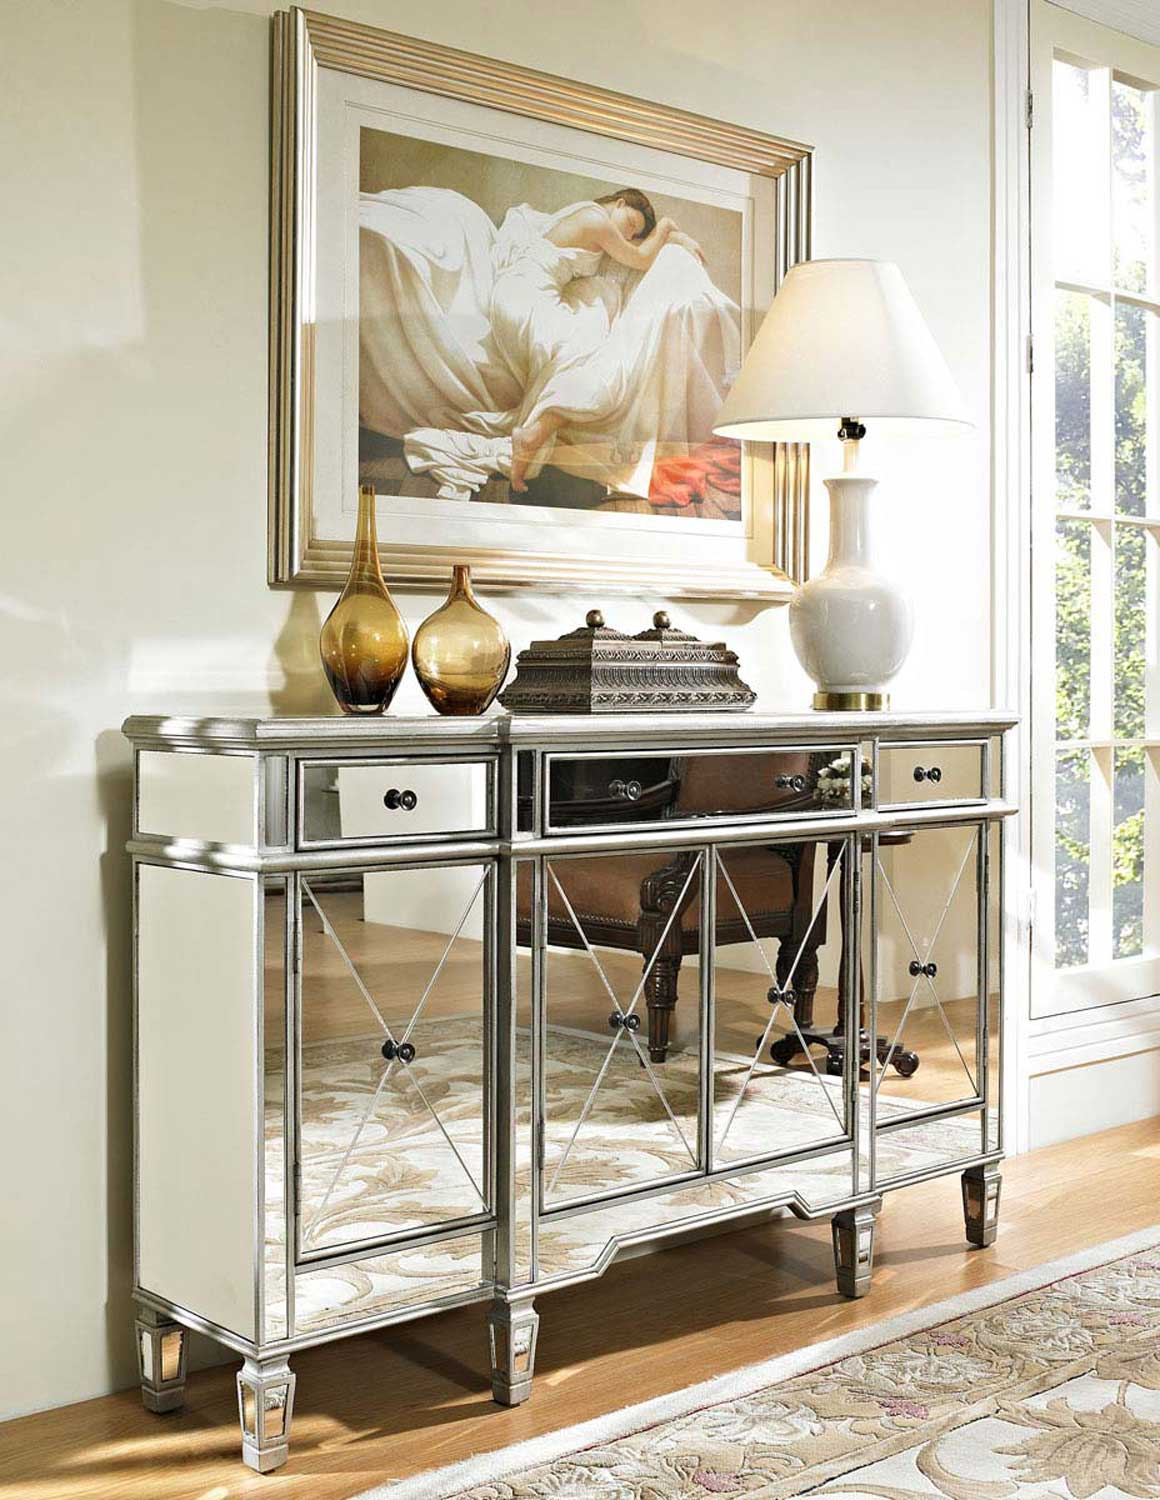 New Mirrored Console Cabinet Review | HomesFeed QF82